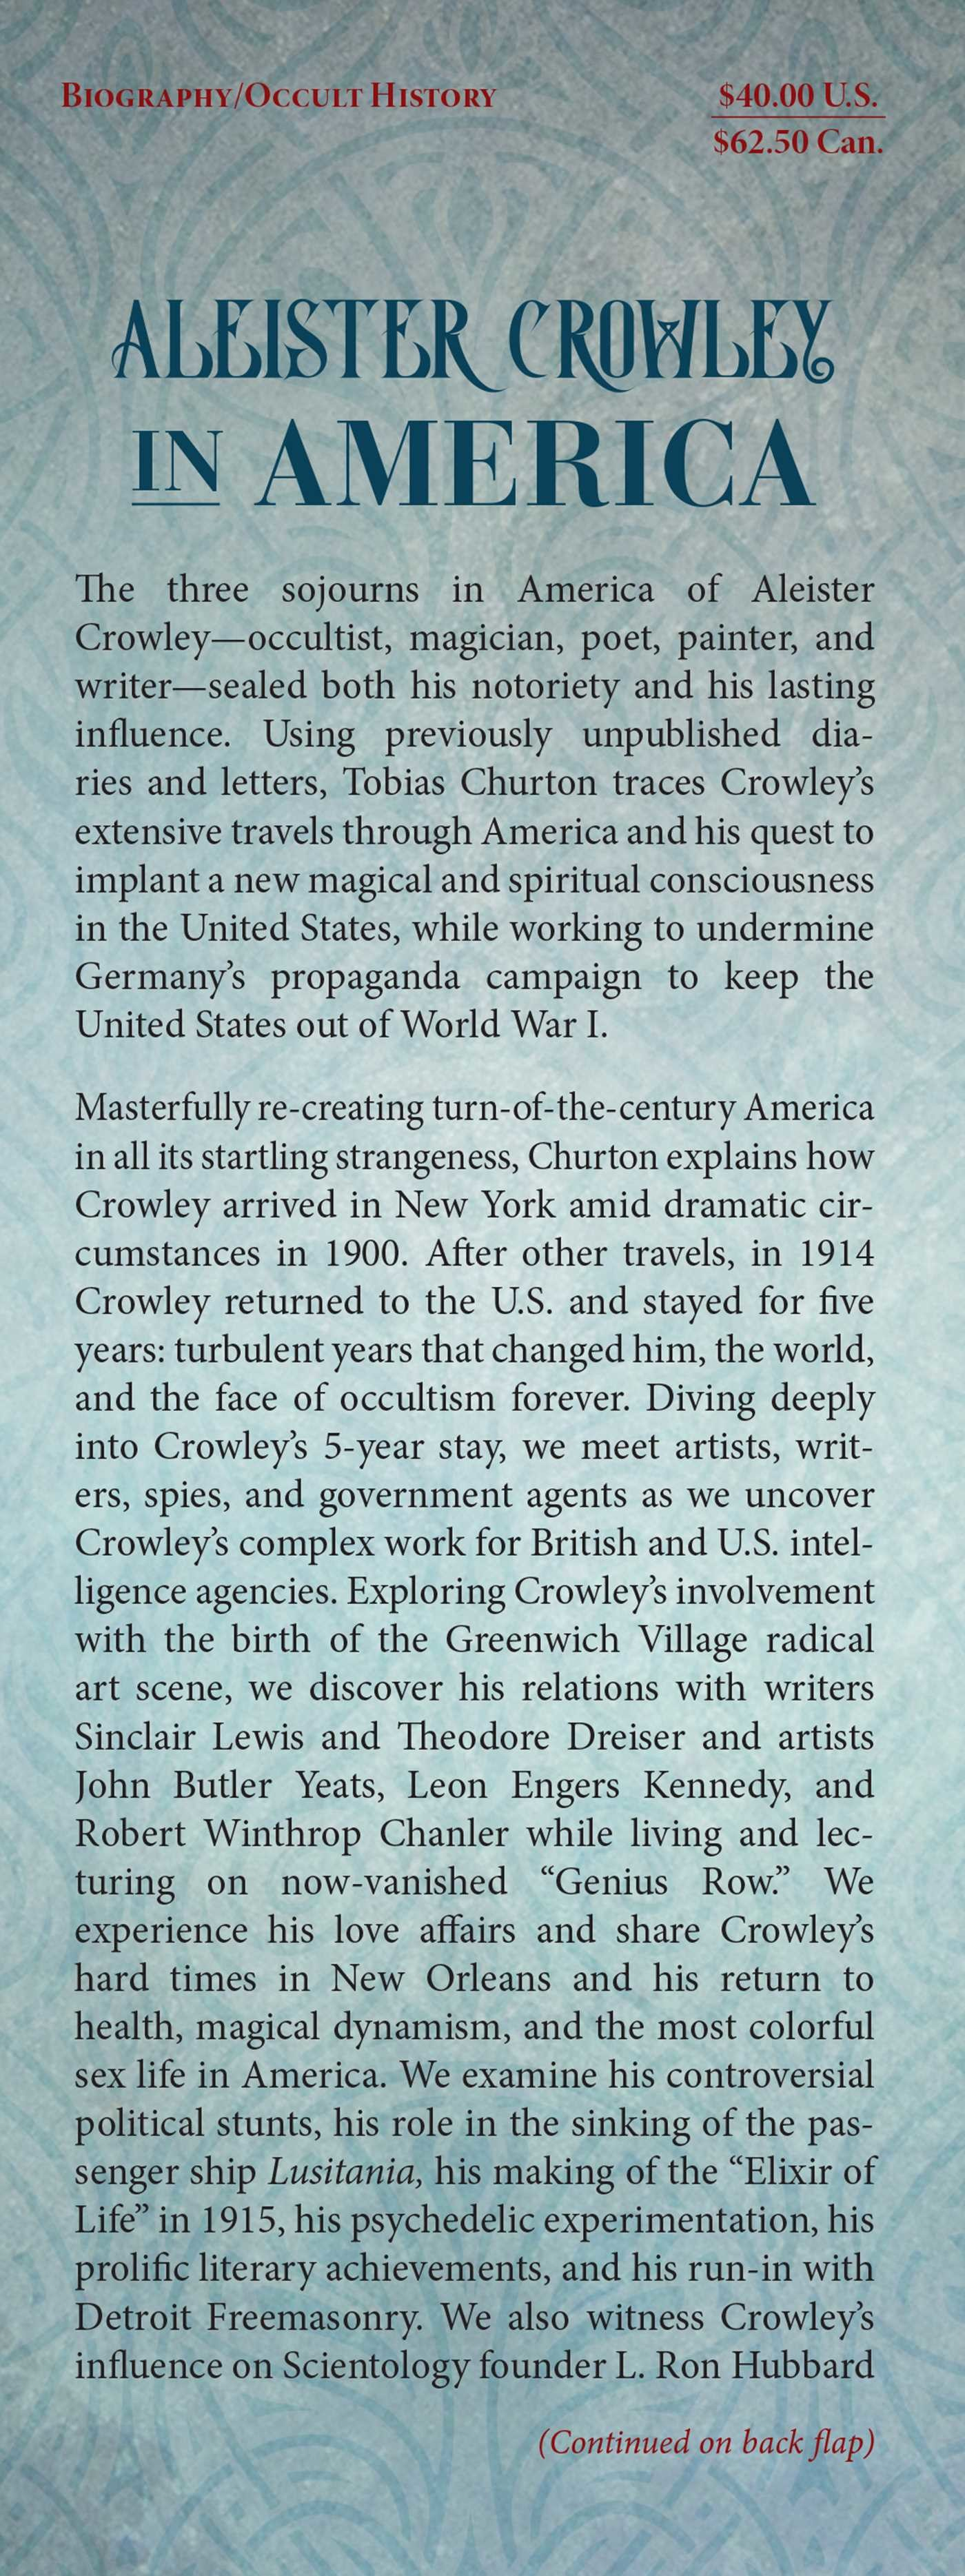 Aleister crowley in america 9781620556306.in01